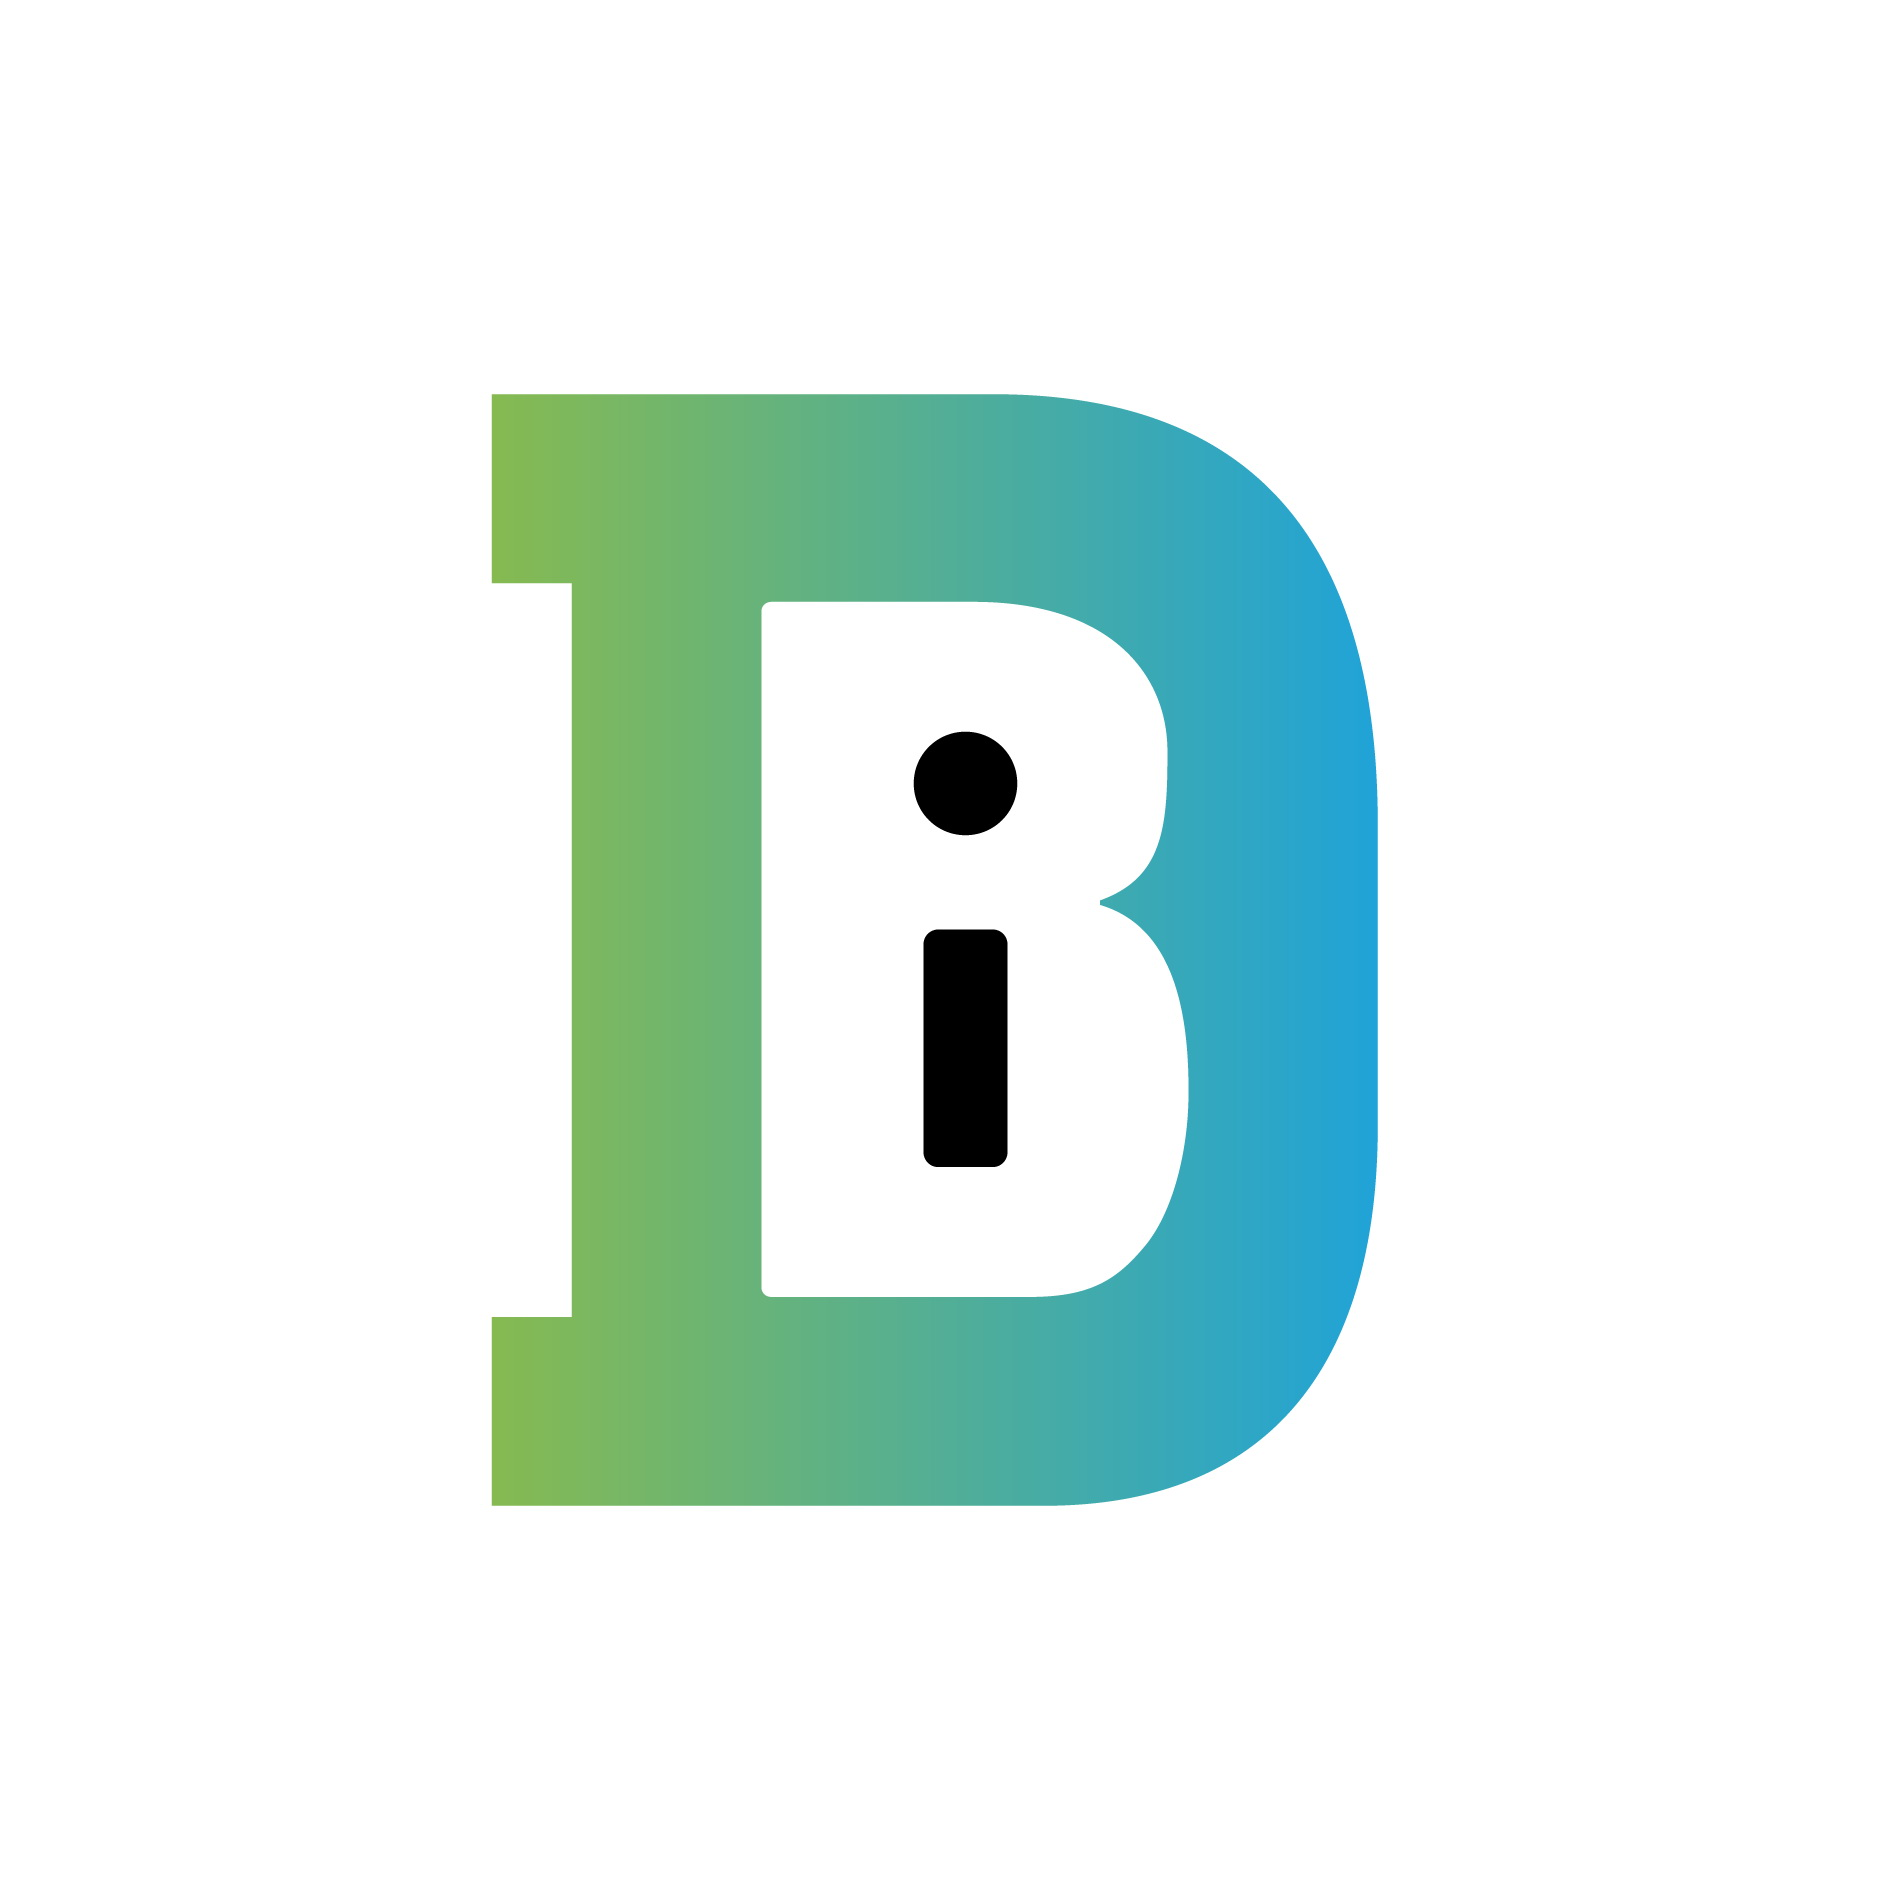 IBD logo - personal satisfaction for a real-world project with a personal connection